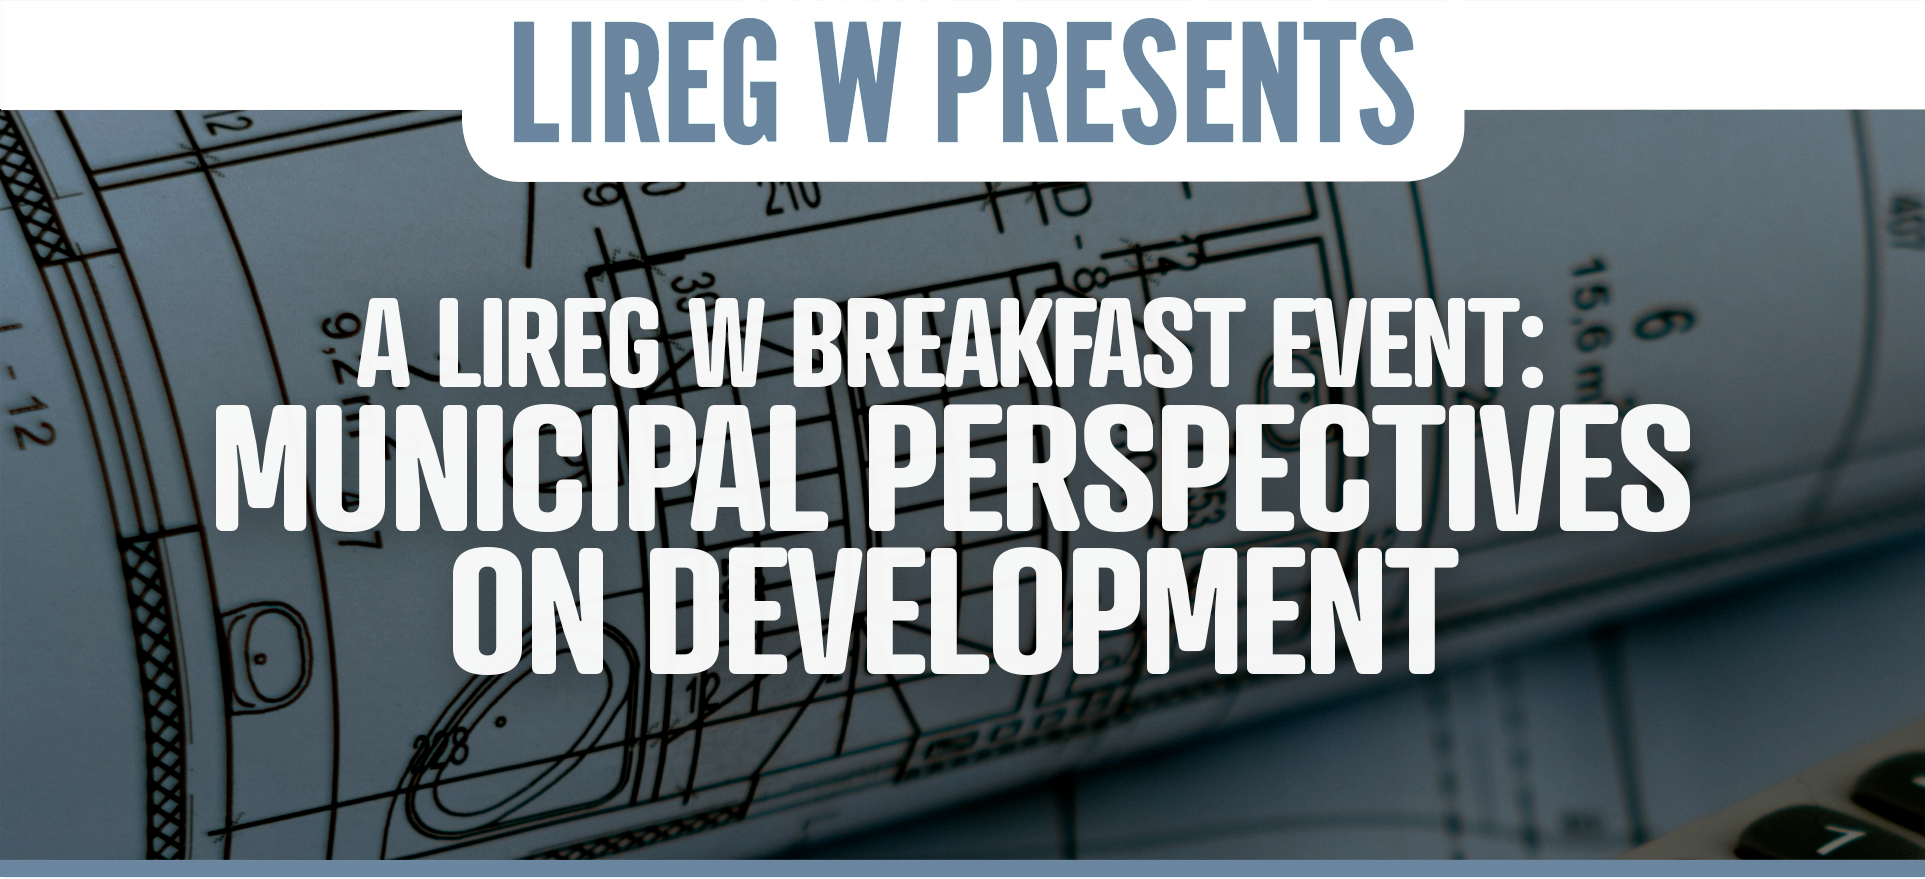 lireg w event: municipal perspectives on development